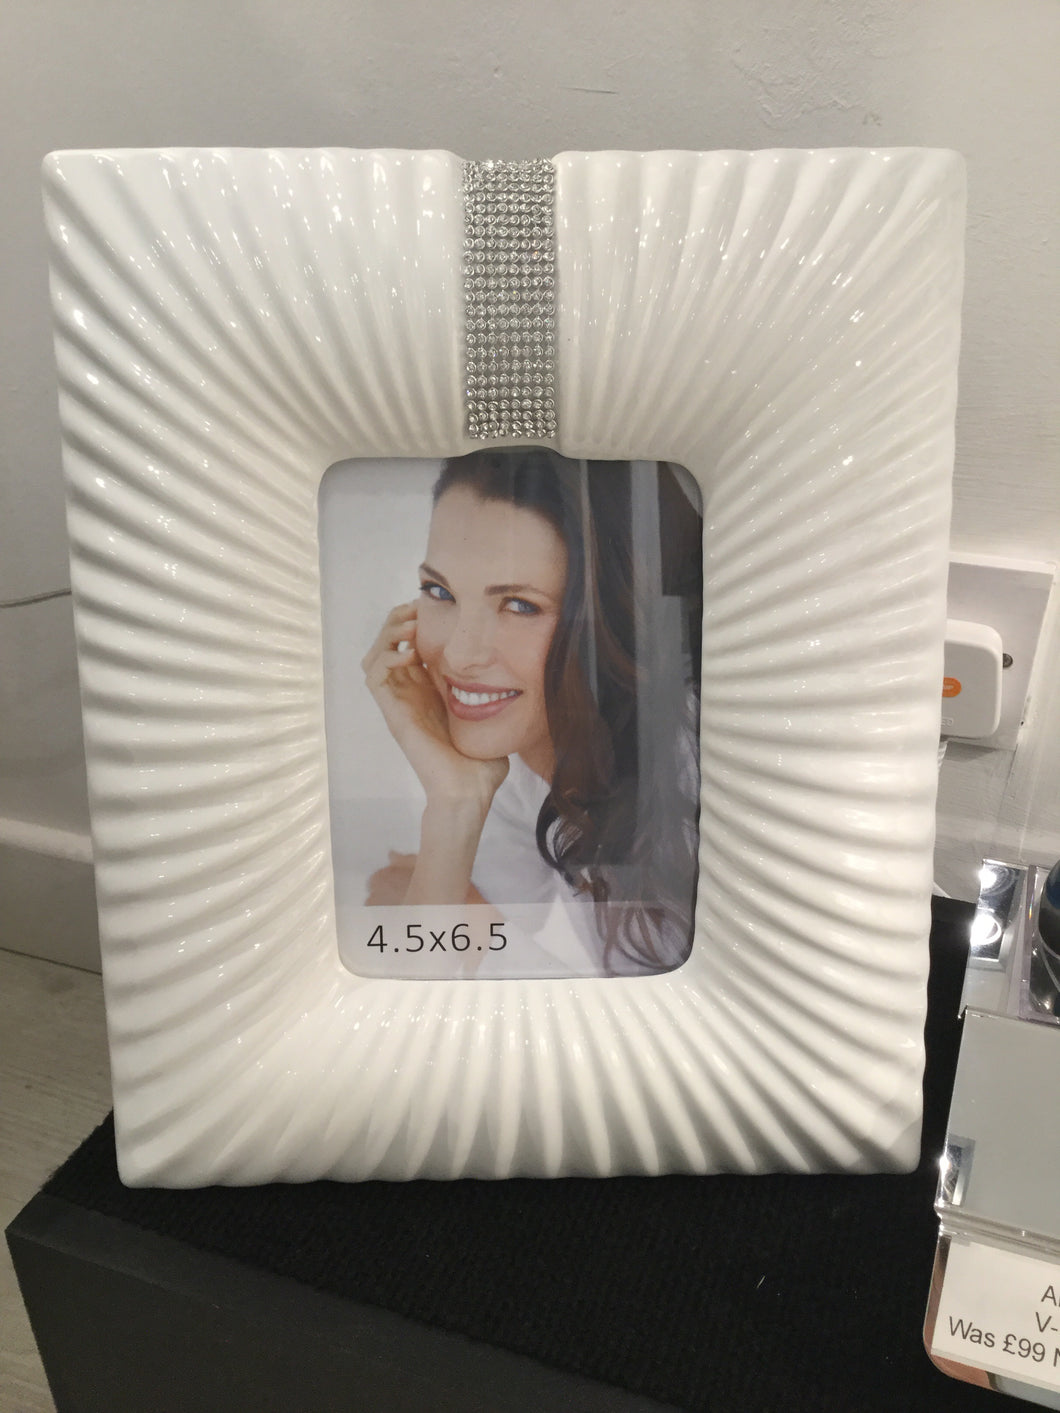 White Glaze and Silver Gem Photo Frame (4.5'x6.5') by CIMC